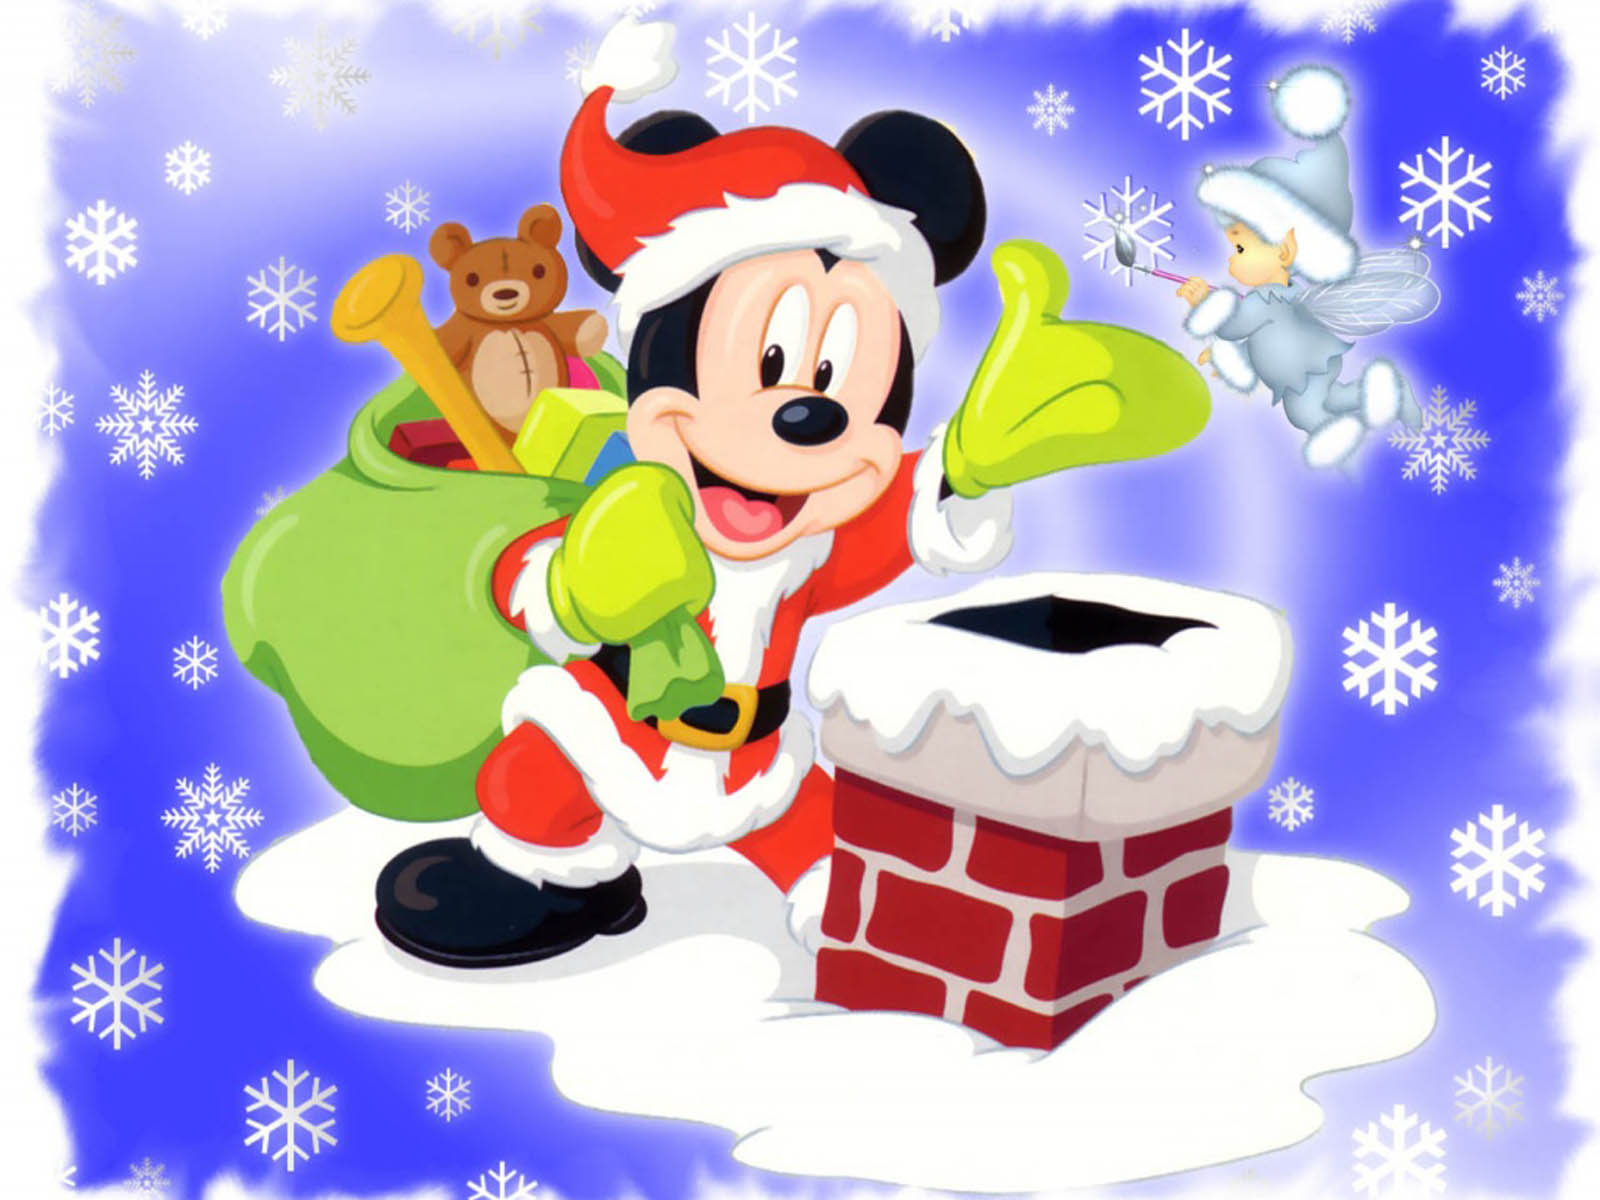 Wallpapers, HQ Free Images Download, Desktop Wallpapers: Mickey Mouse